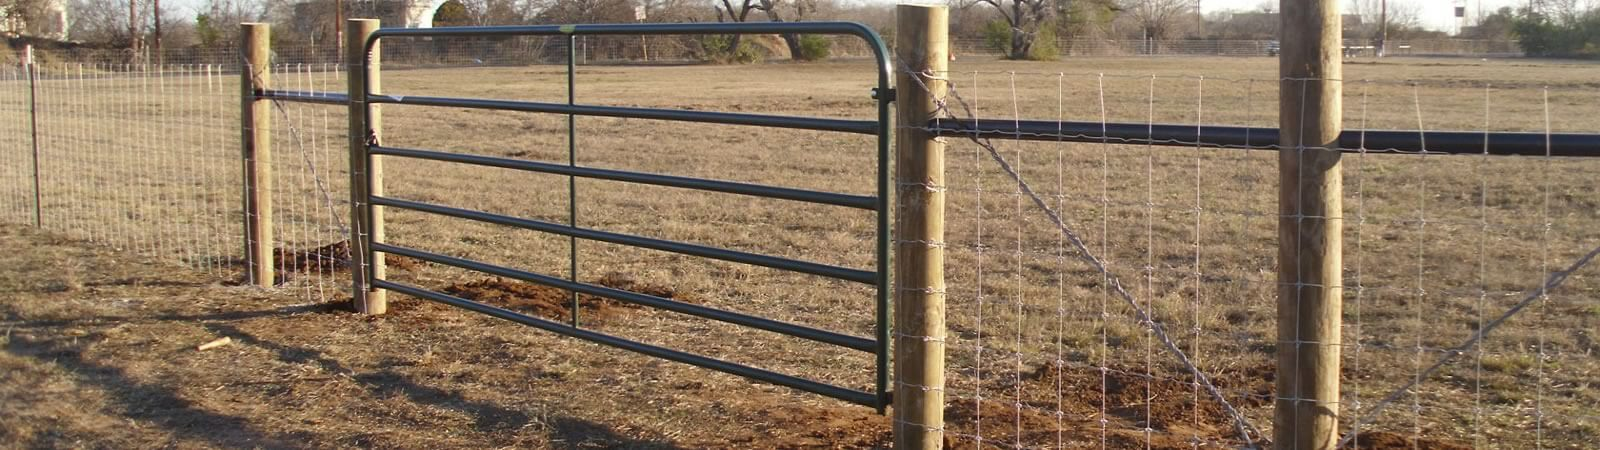 Ranch Horse Amp Field Fence Contractor South Texas Fence